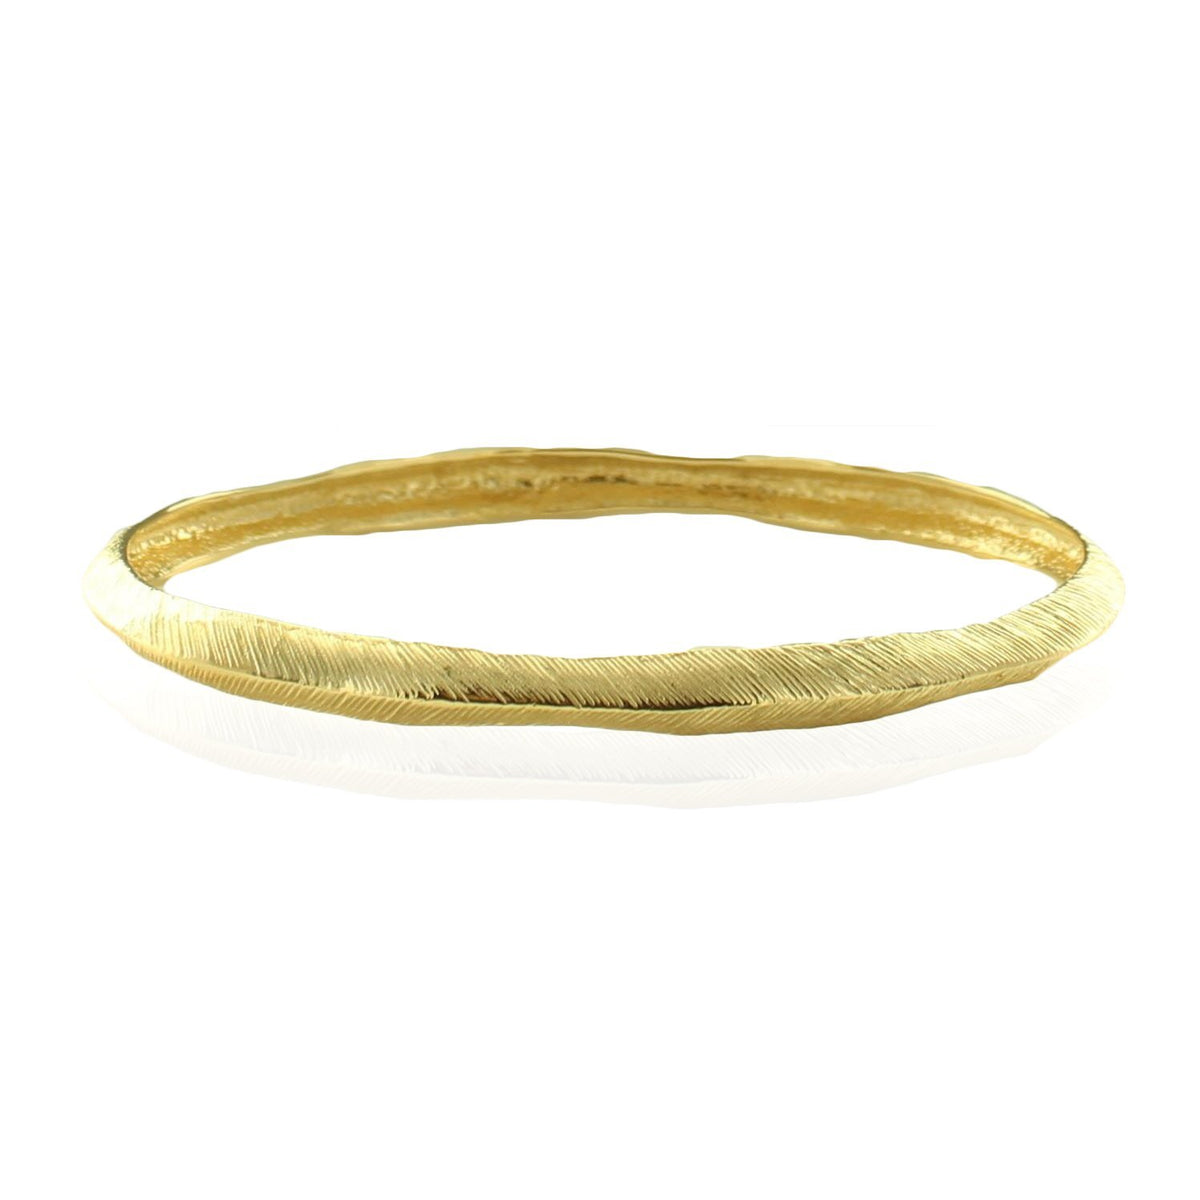 BRAVE OVAL BANGLE - GOLD - SO PRETTY CARA COTTER